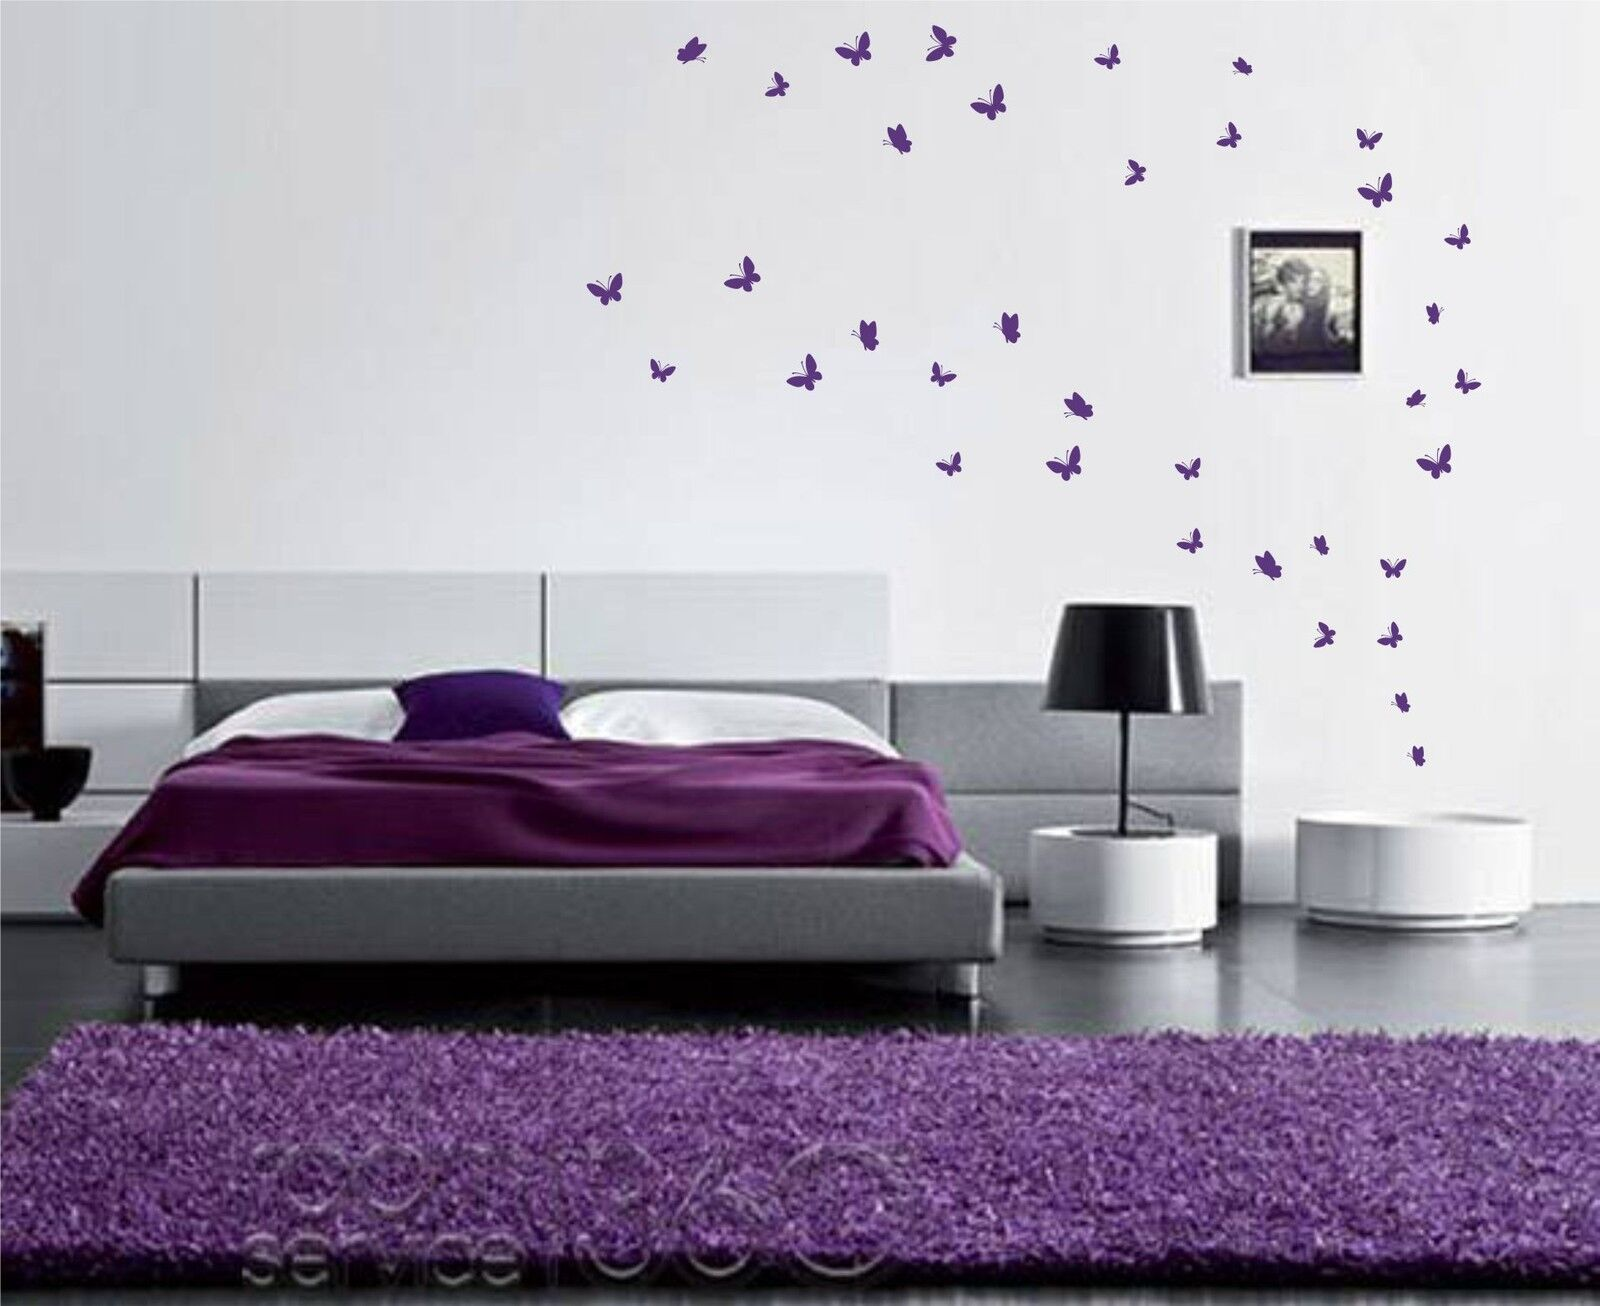 Home Decoration - 42 Butterfly Stickers (UP TO 42)  Wall Art Butterflies vinyl wall decal decor